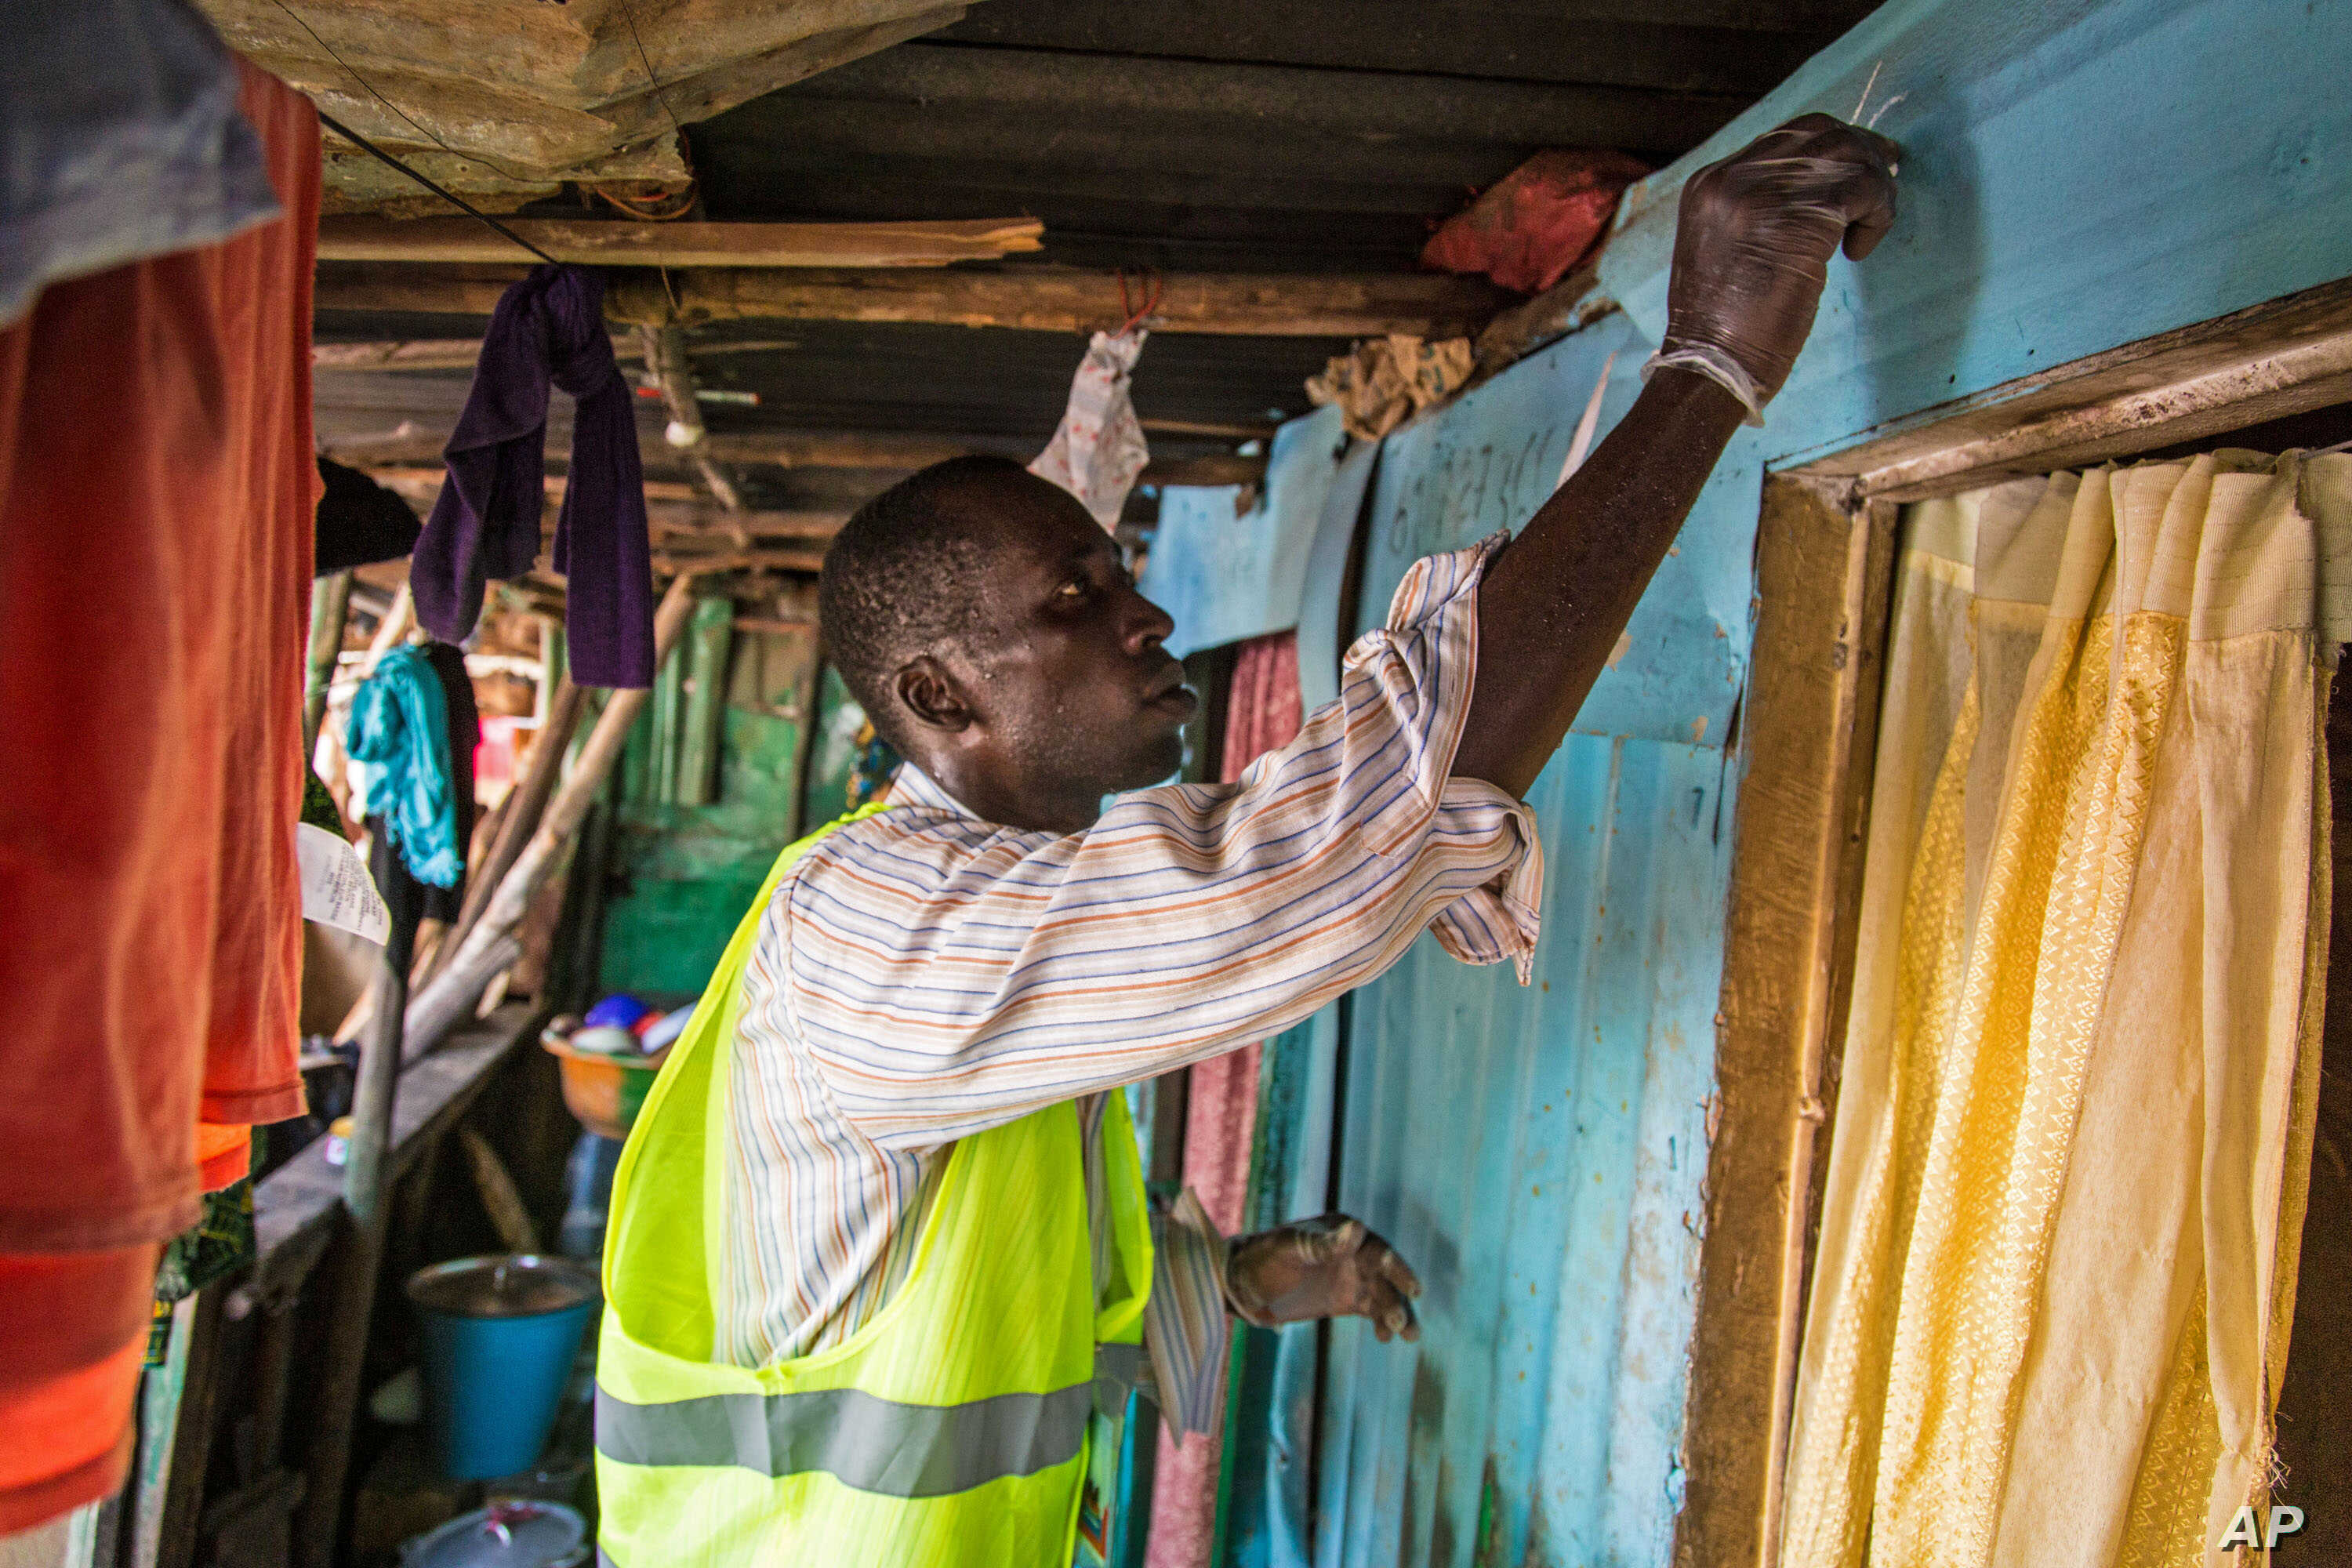 A health worker volunteer marks a home with chalk to identify that it has been visited, as they distribute bars of soap and information about Ebola in Freetown, Sierra Leone, Sept. 20, 2014.